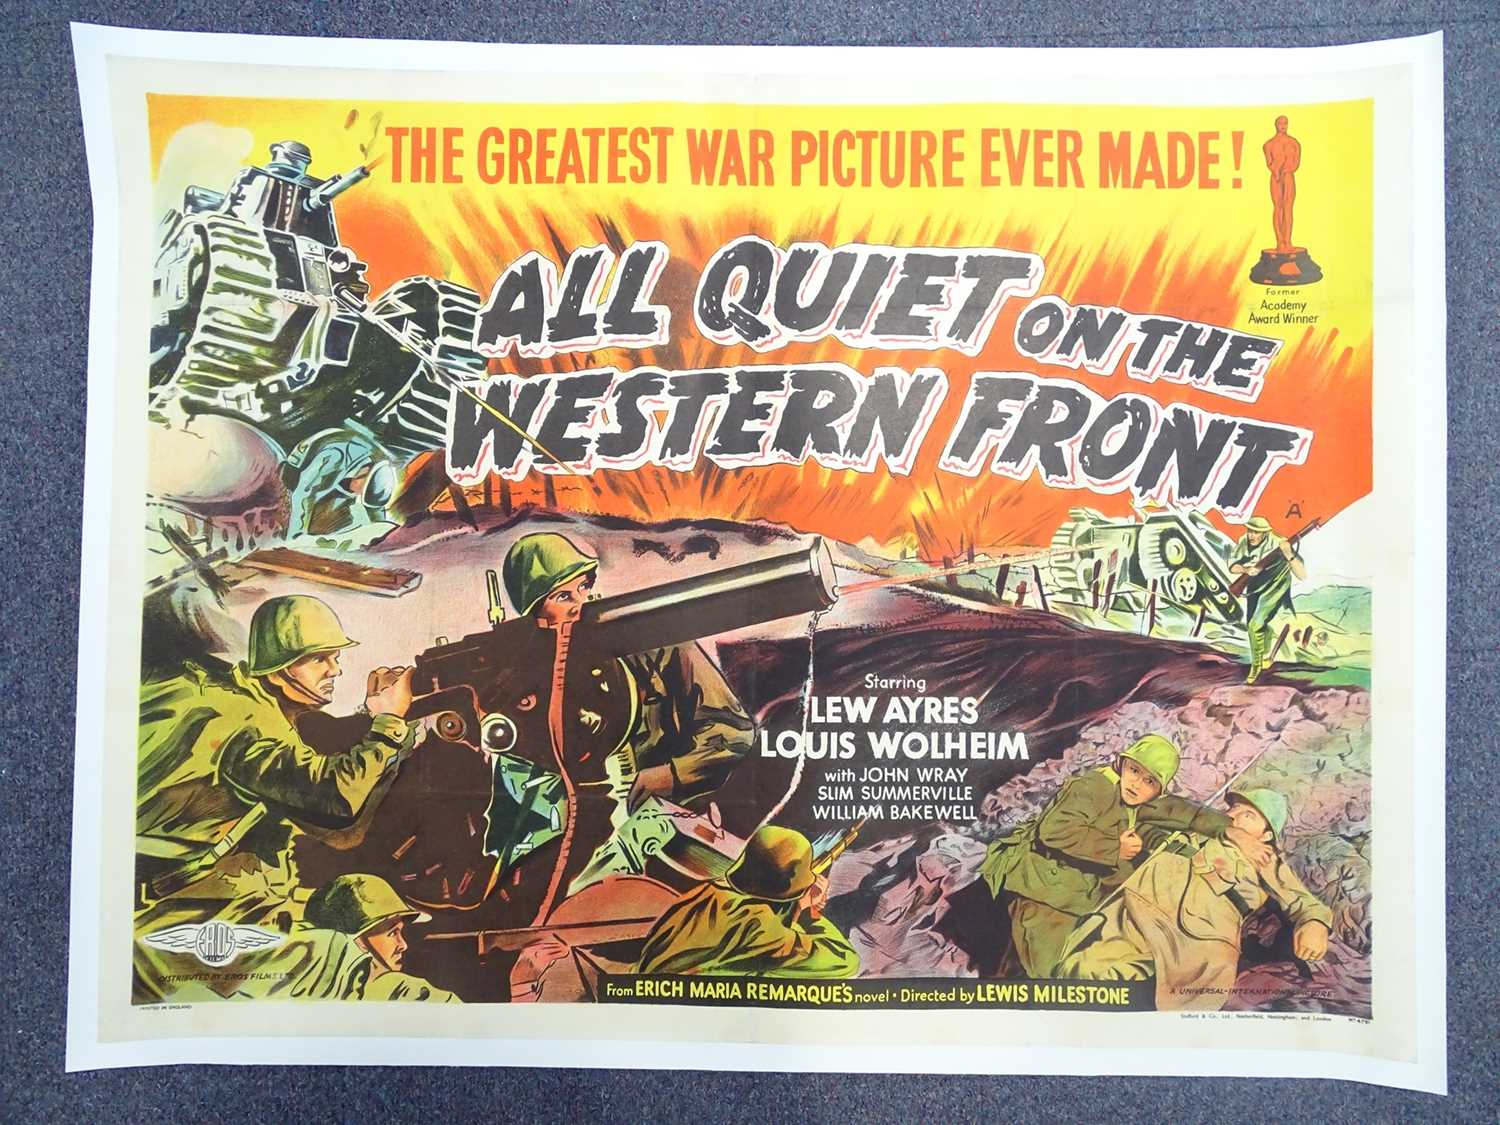 Lot 337 - ALL QUIET ON THE WESTERN FRONT (1930) -...